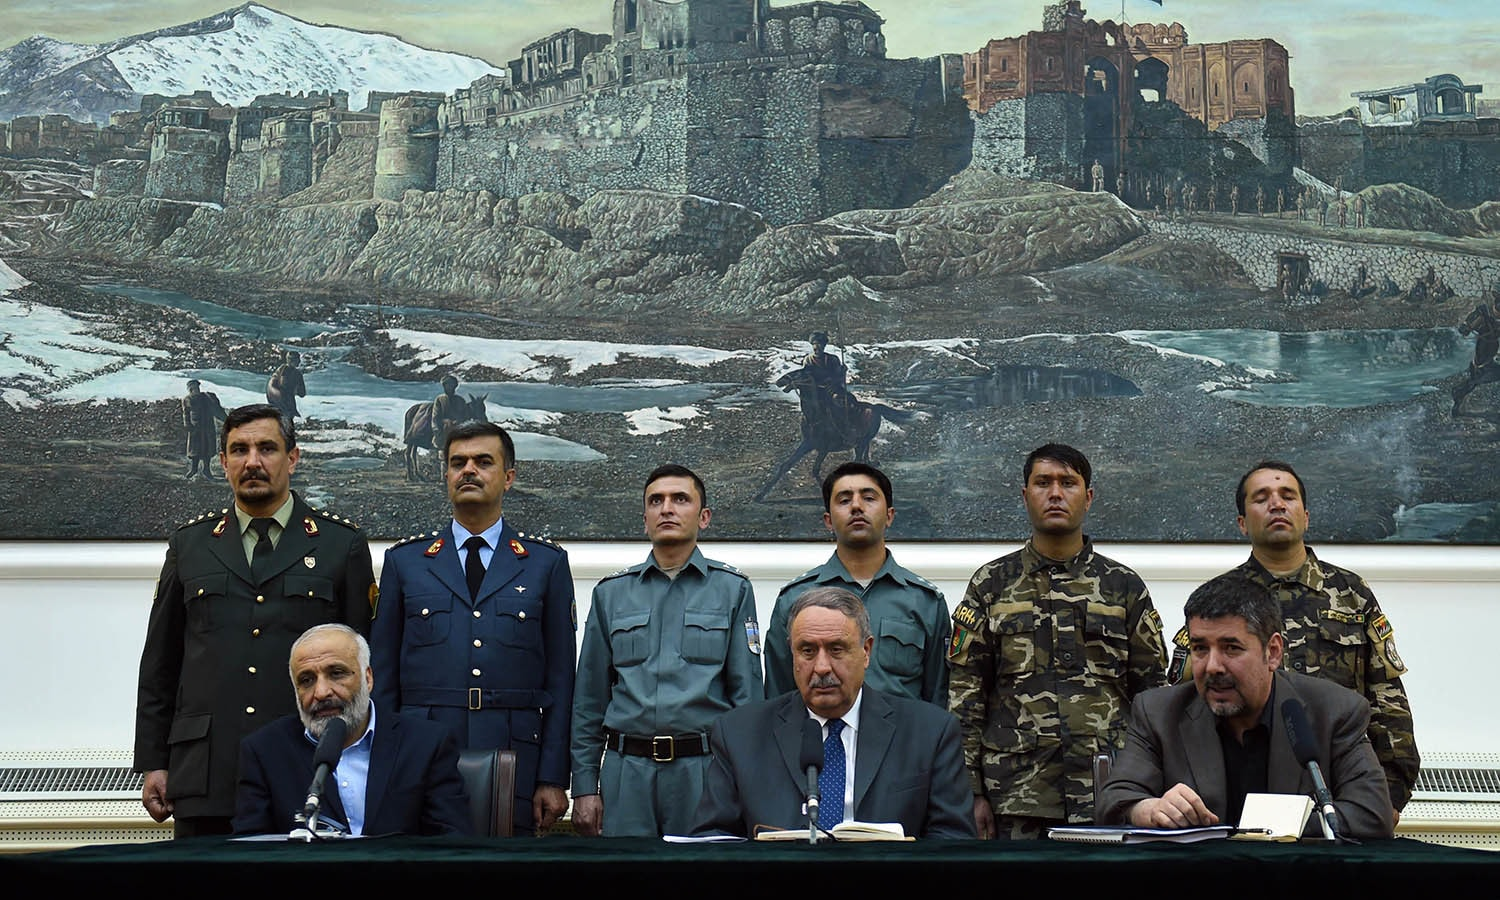 Afghan acting Defence Minister Mohammed Masoom Stanekza (L), Interior Minister General Nur ul-Haq Ulumi (C) and the Head of the National Directorate of Security (NDS) Rahmatullah Nabil (R) look on during a press conference at the presidential palace in Kabul. — AFP